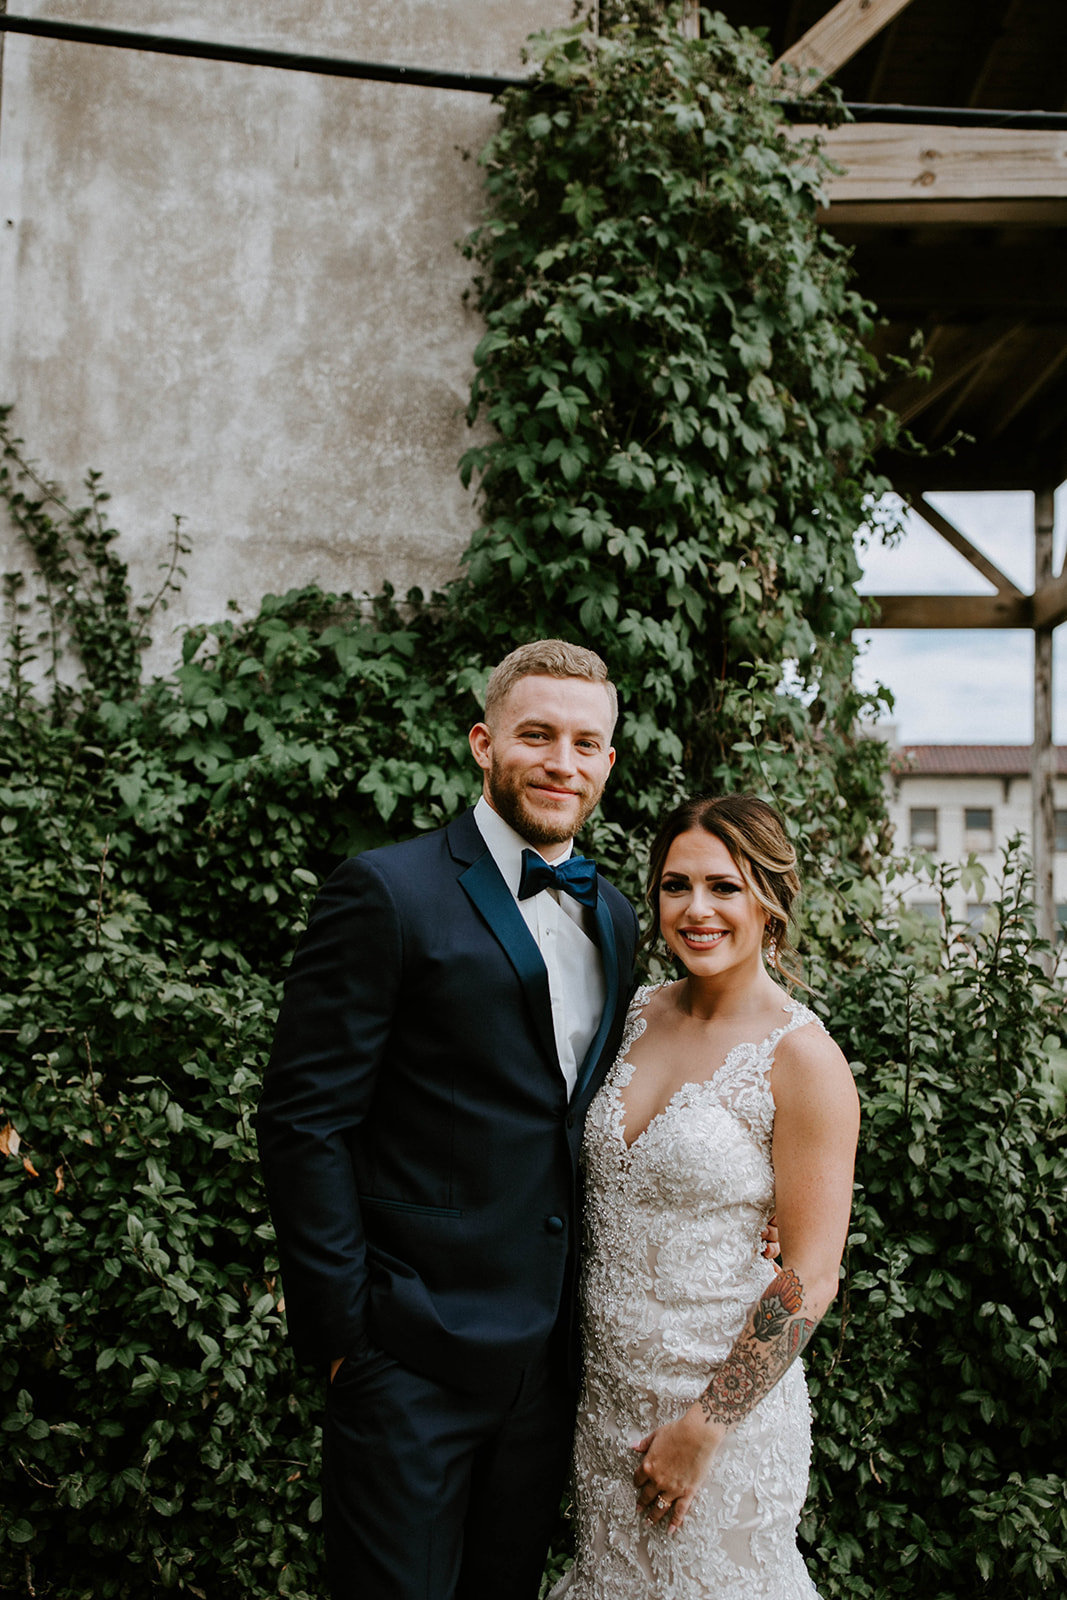 ALTON ILLINOIS WEDDING - OLD CRACKER FACTORY - WOW FURNISHINGS - THE LOVELY LENS PHOTOGRAPHY-203_websize